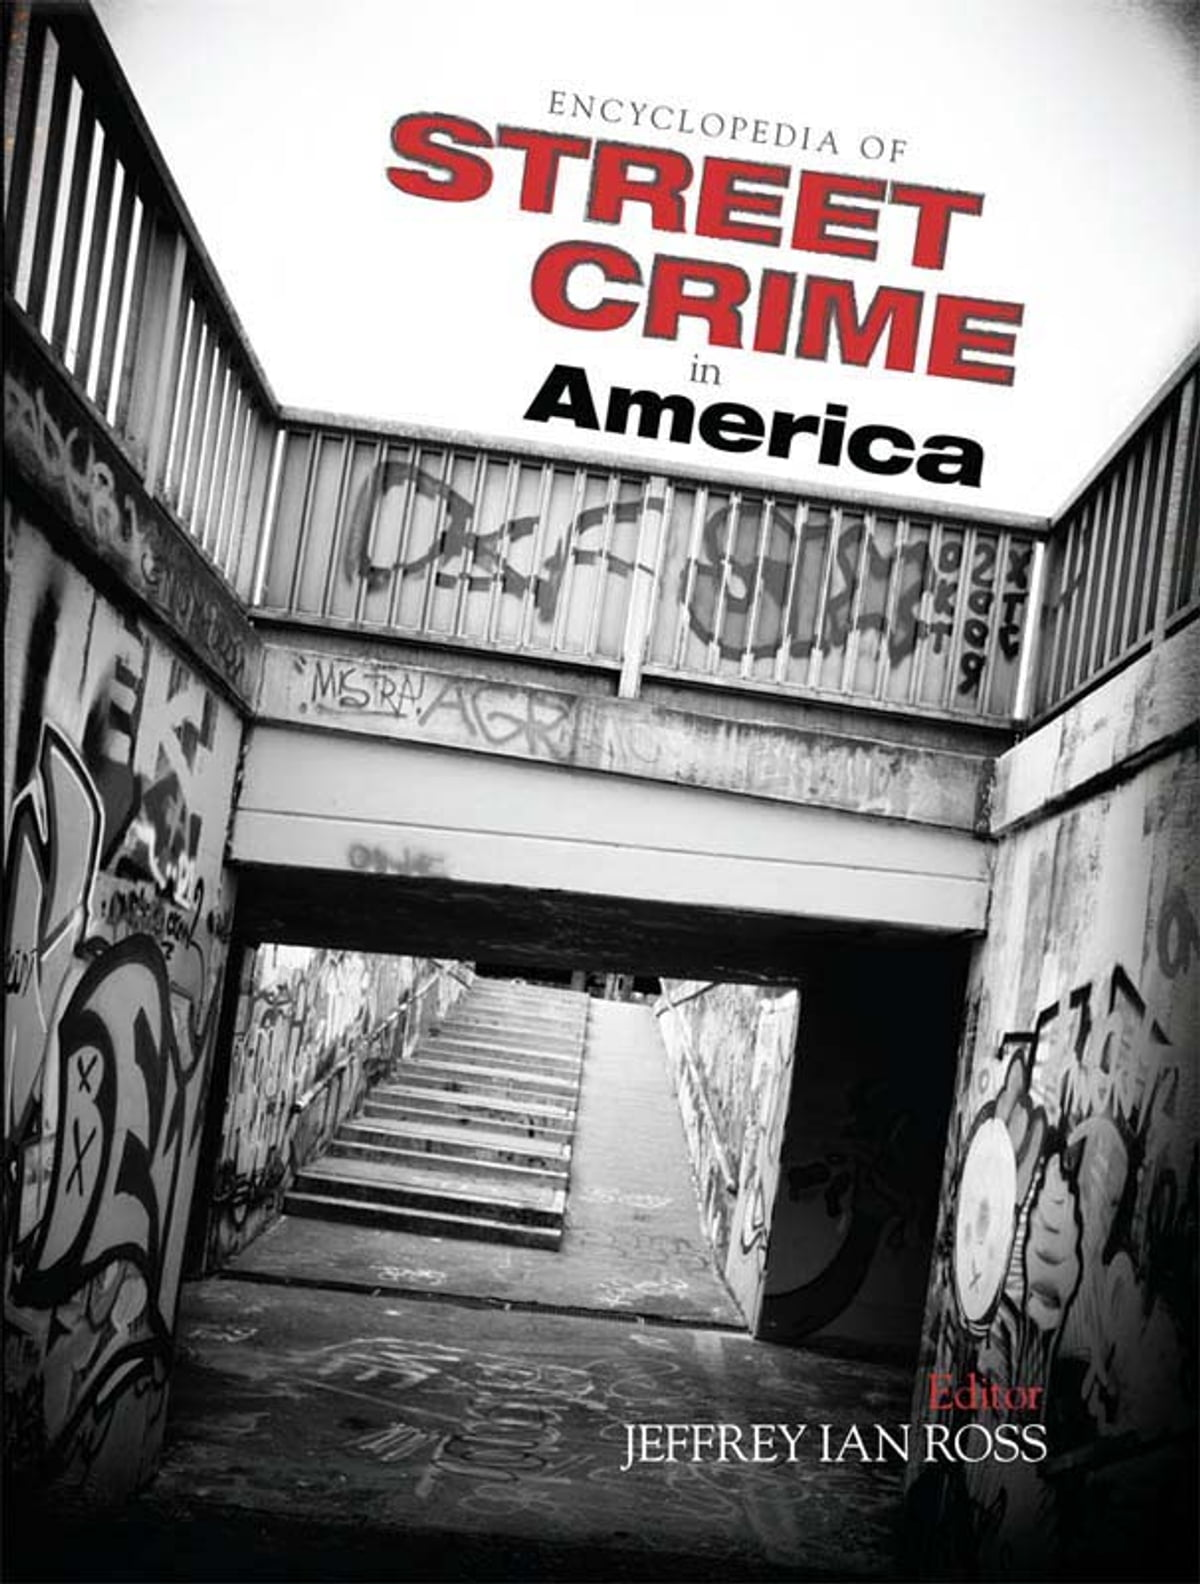 addressing crime in america in john j A gathering storm—violent crime in america  editor of law enforcement news at john jay college  deputy attorney general paul j mcnulty for addressing the.